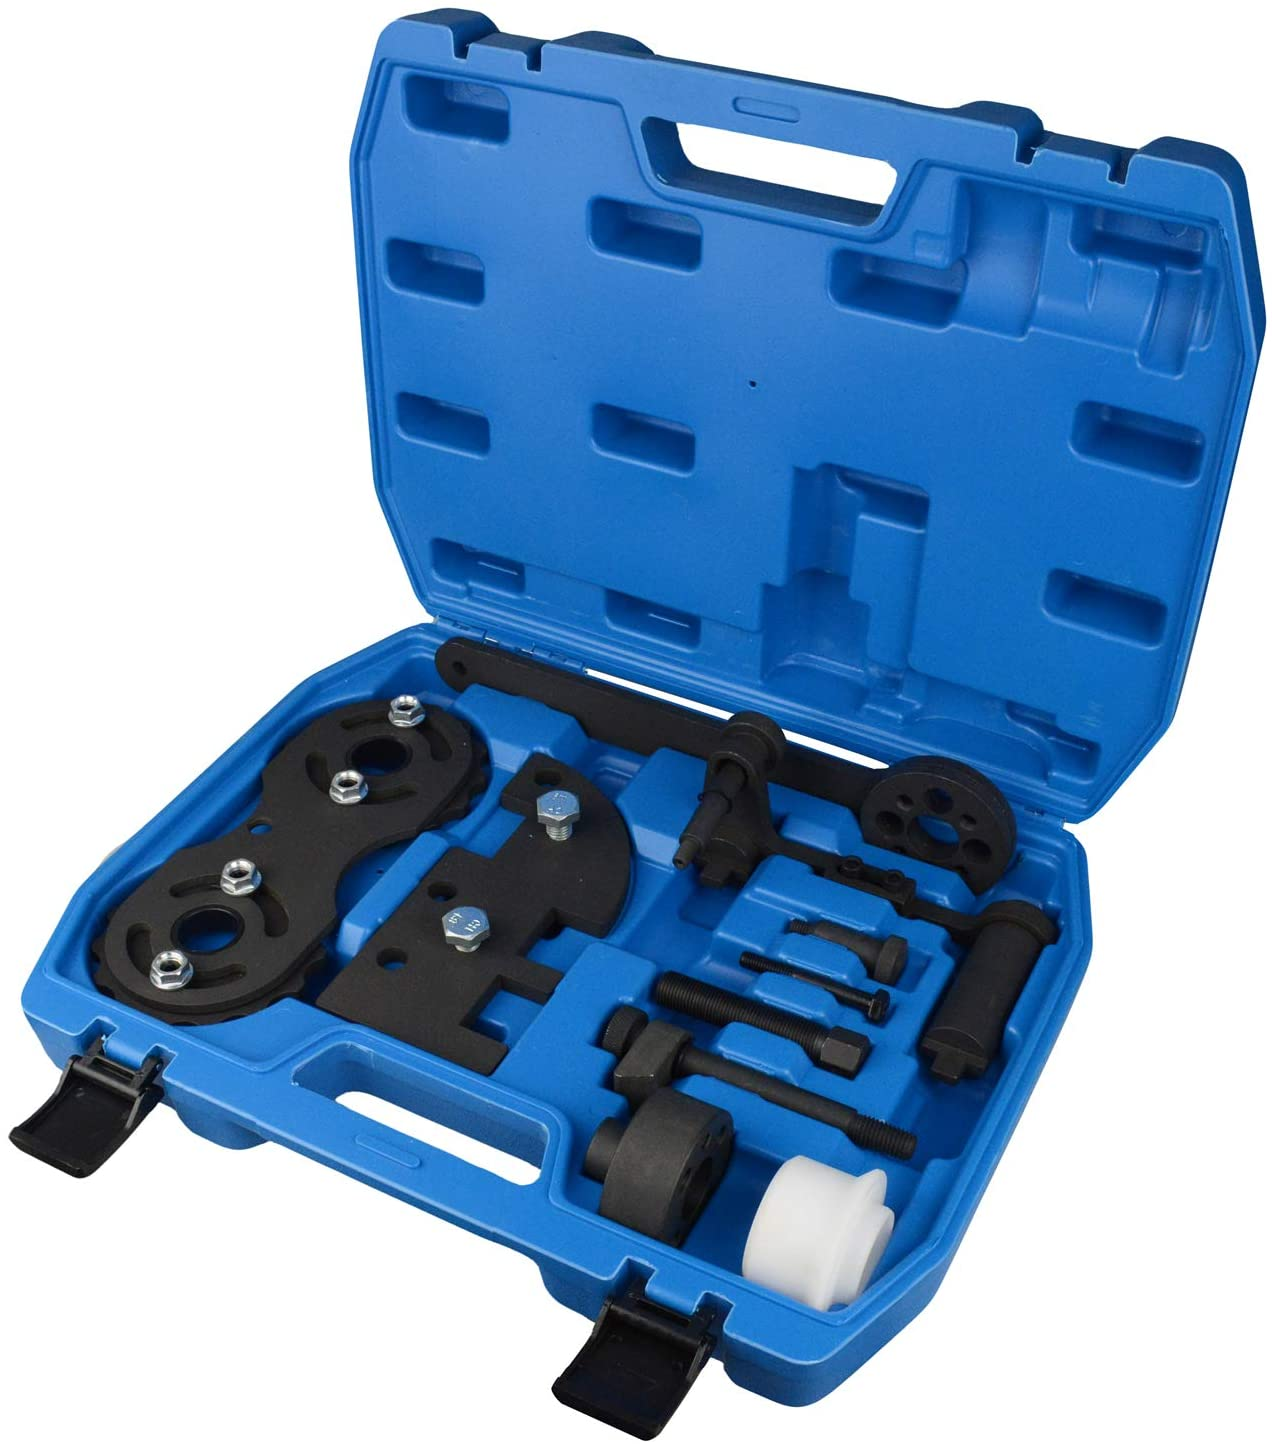 Camshaft Alignment Tool Kit for New Volvo 2.0T S60 S80 V60 V70 XC60 XC70 XC80 Engines Timing Belt AUTOOL Camshaft Chain Timing Tool